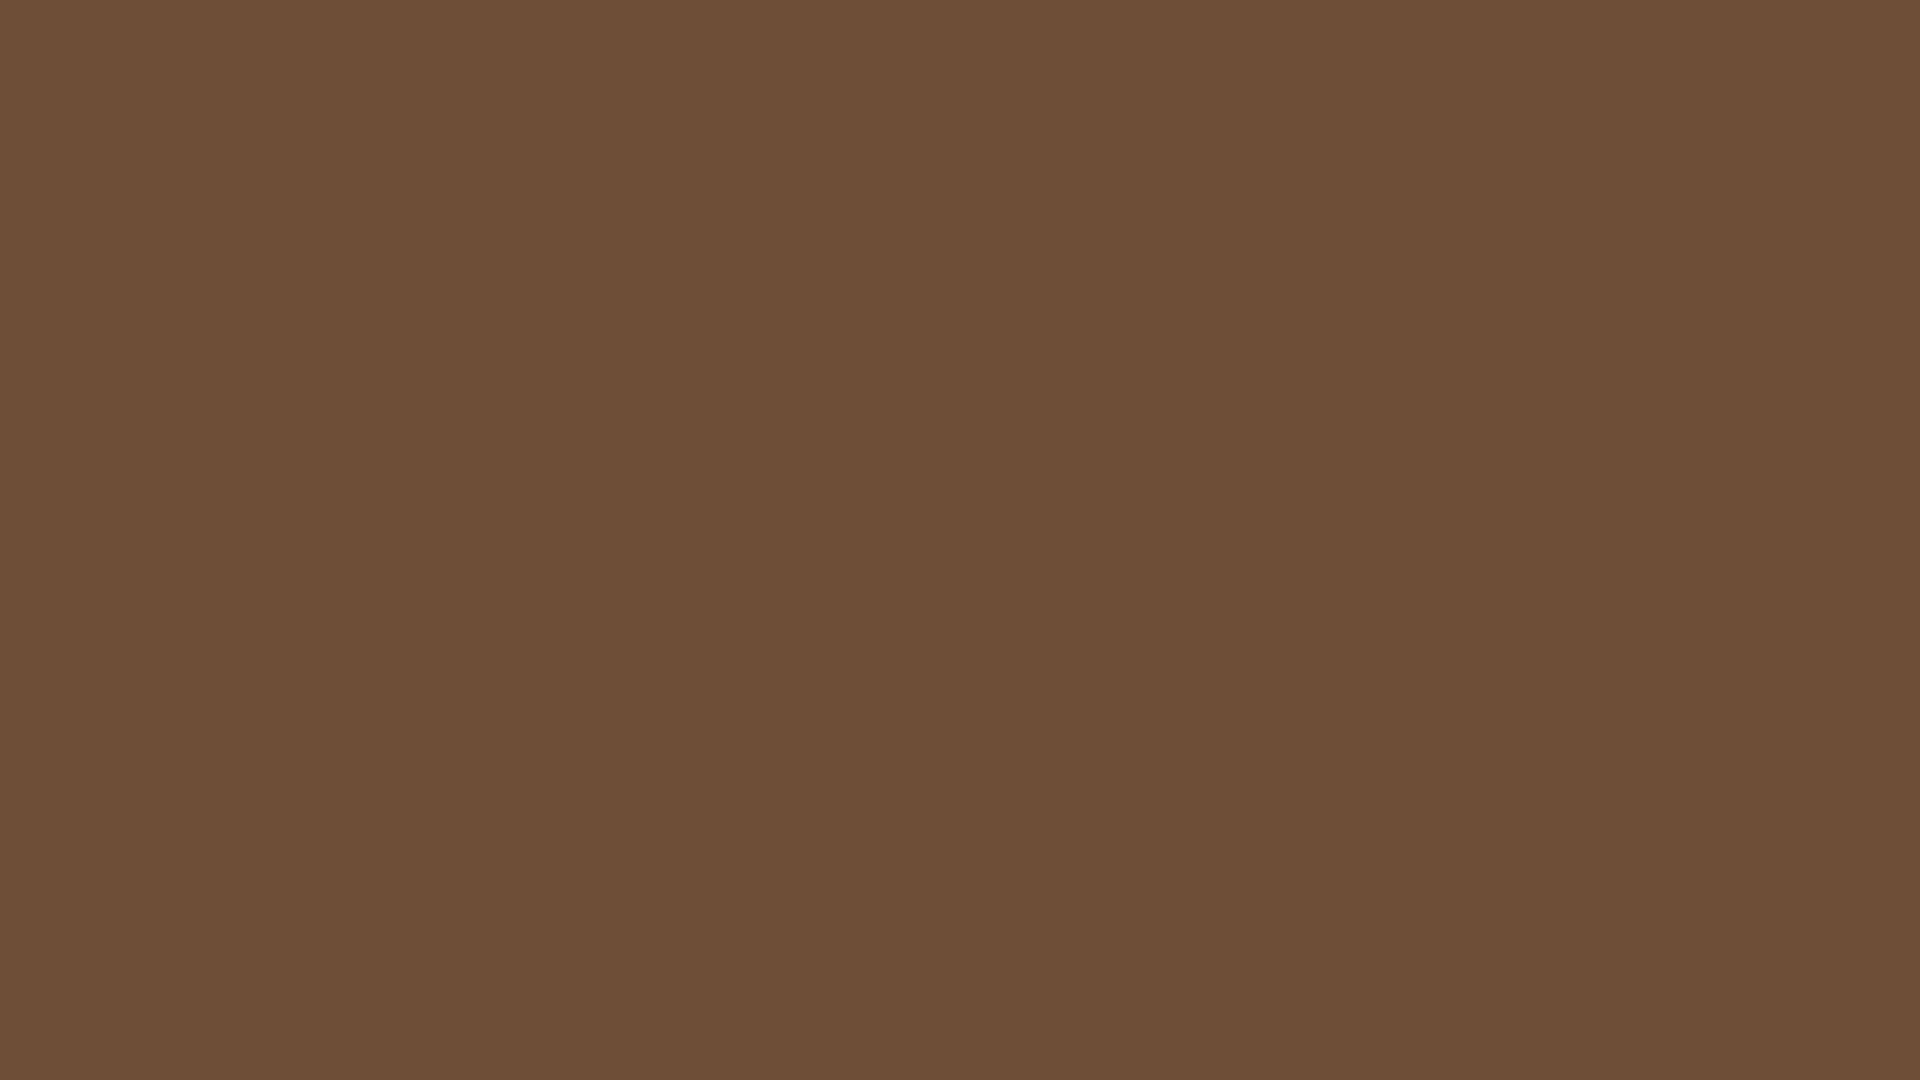 Privacy Policy >> 1920x1080 Tuscan Brown Solid Color Background